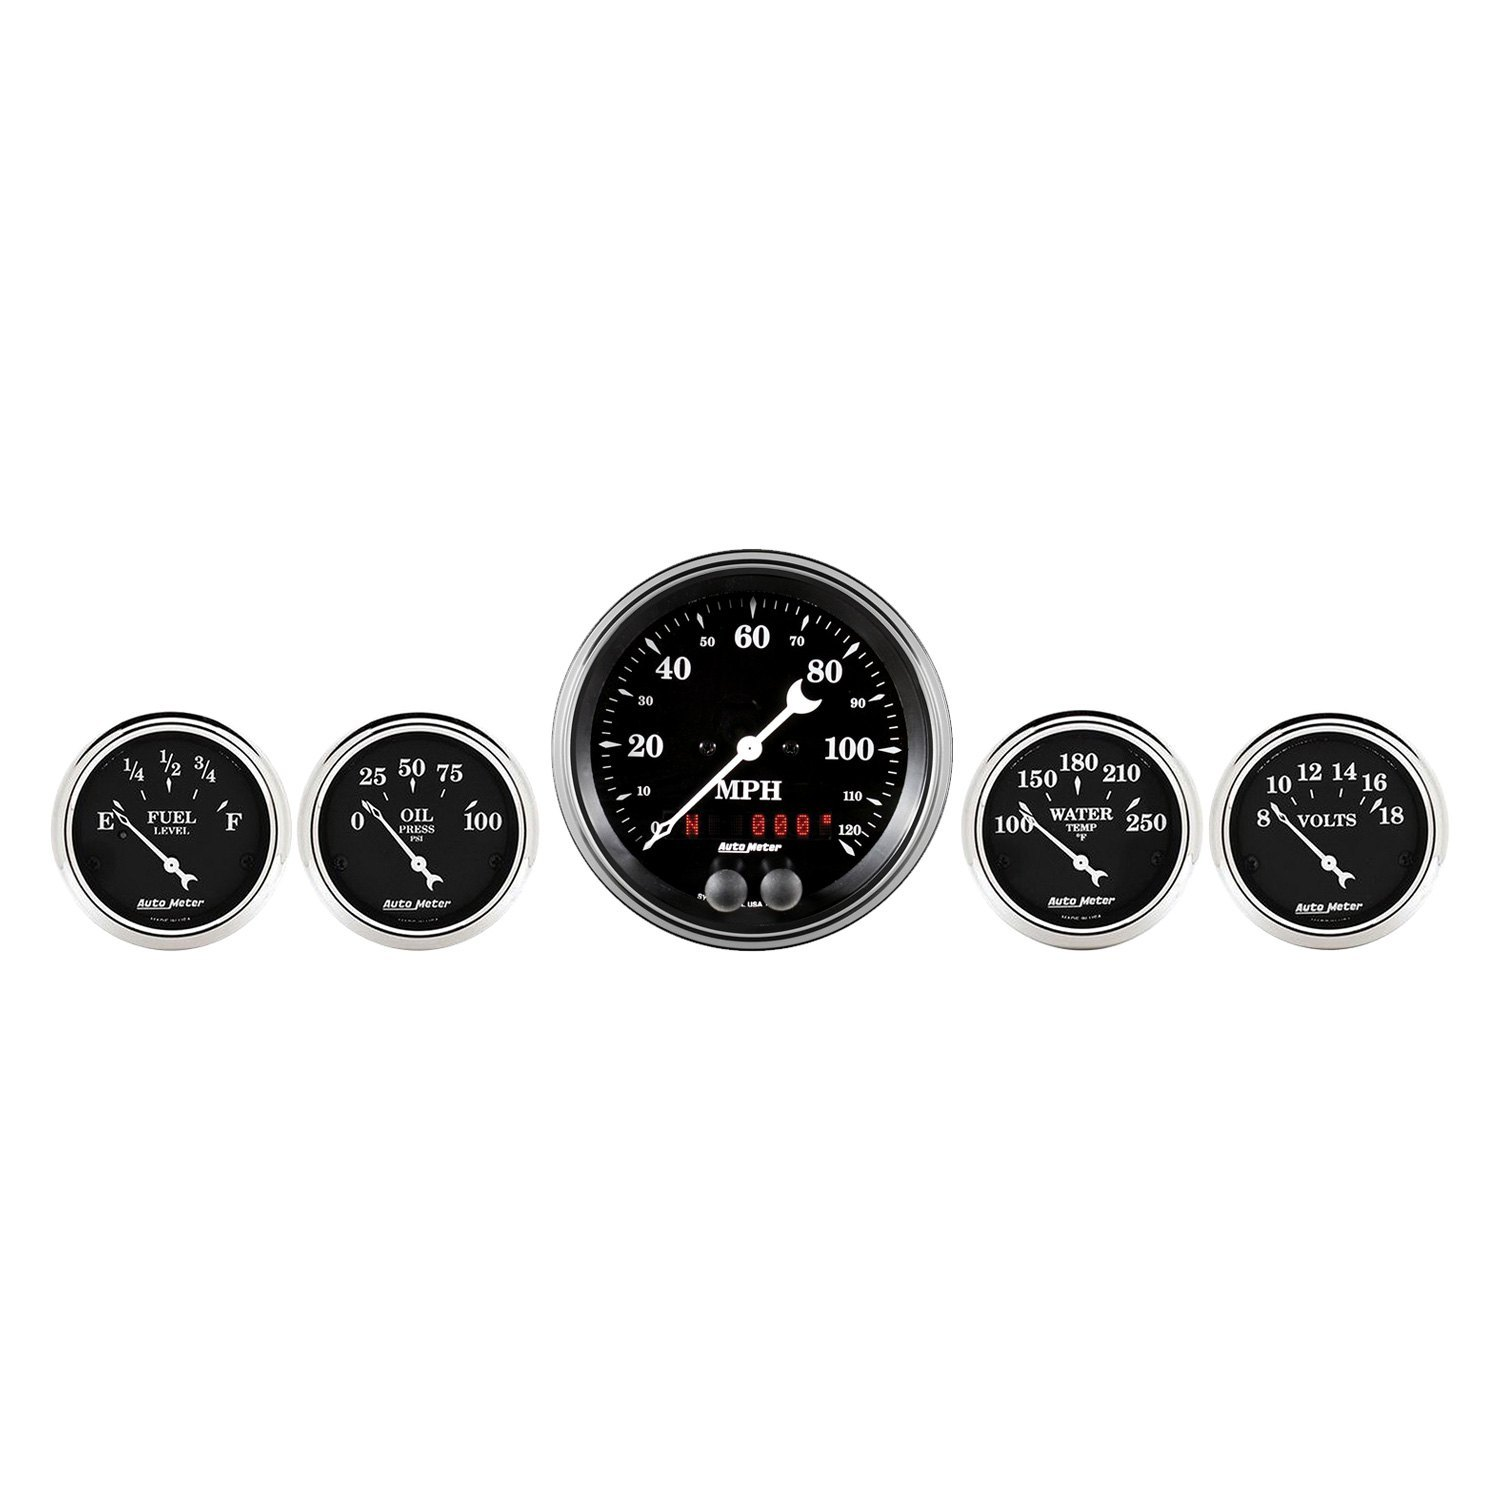 AUTO METER 1708 Old TYME Black Street Rod Kit